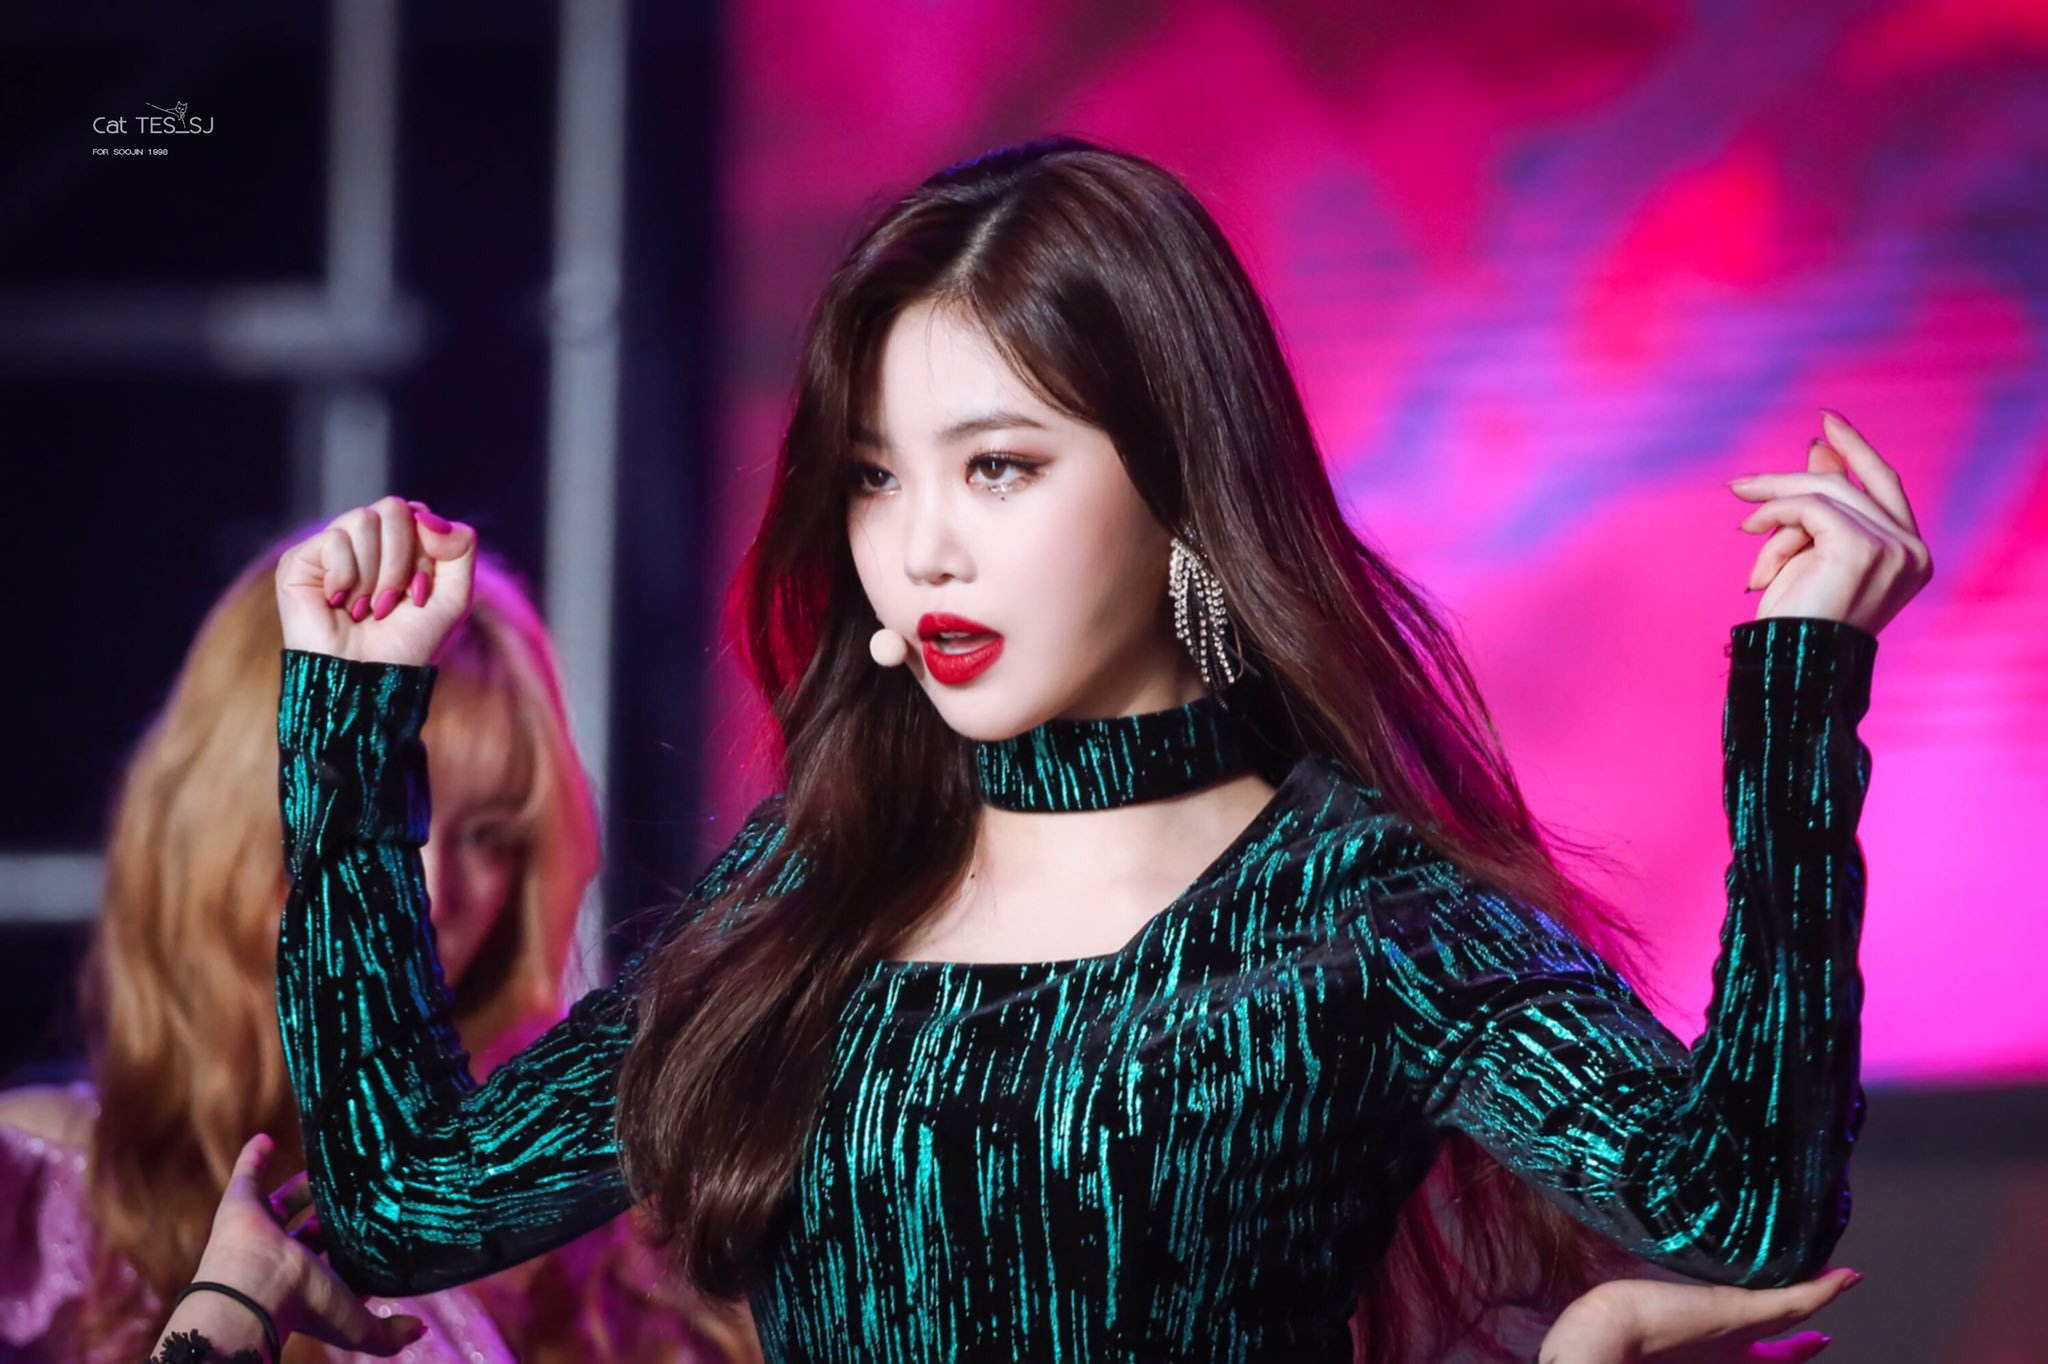 gidle, gidle profile, gidle members, gidle facts, gidle weight, gidle height, gidle leader, gidle vocal, gidle dance, gidle maknae, gidle visual, gidle soojin, soojin